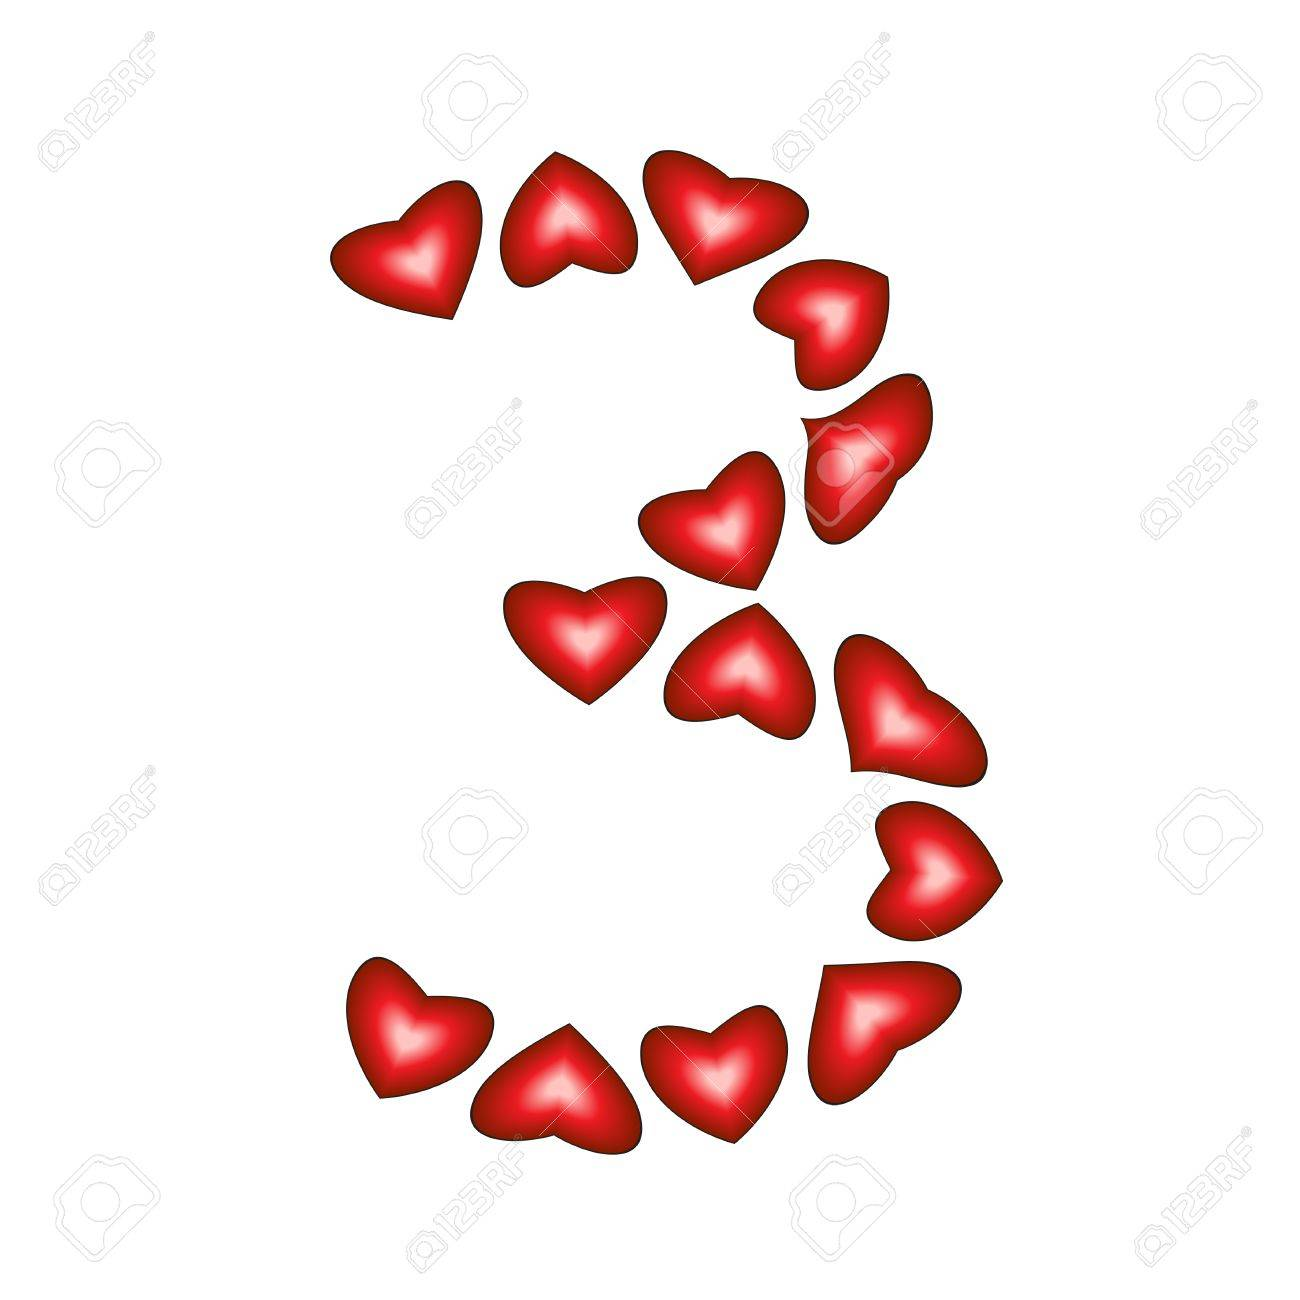 Number 3 made of hearts on white background Stock Vector - 15139209